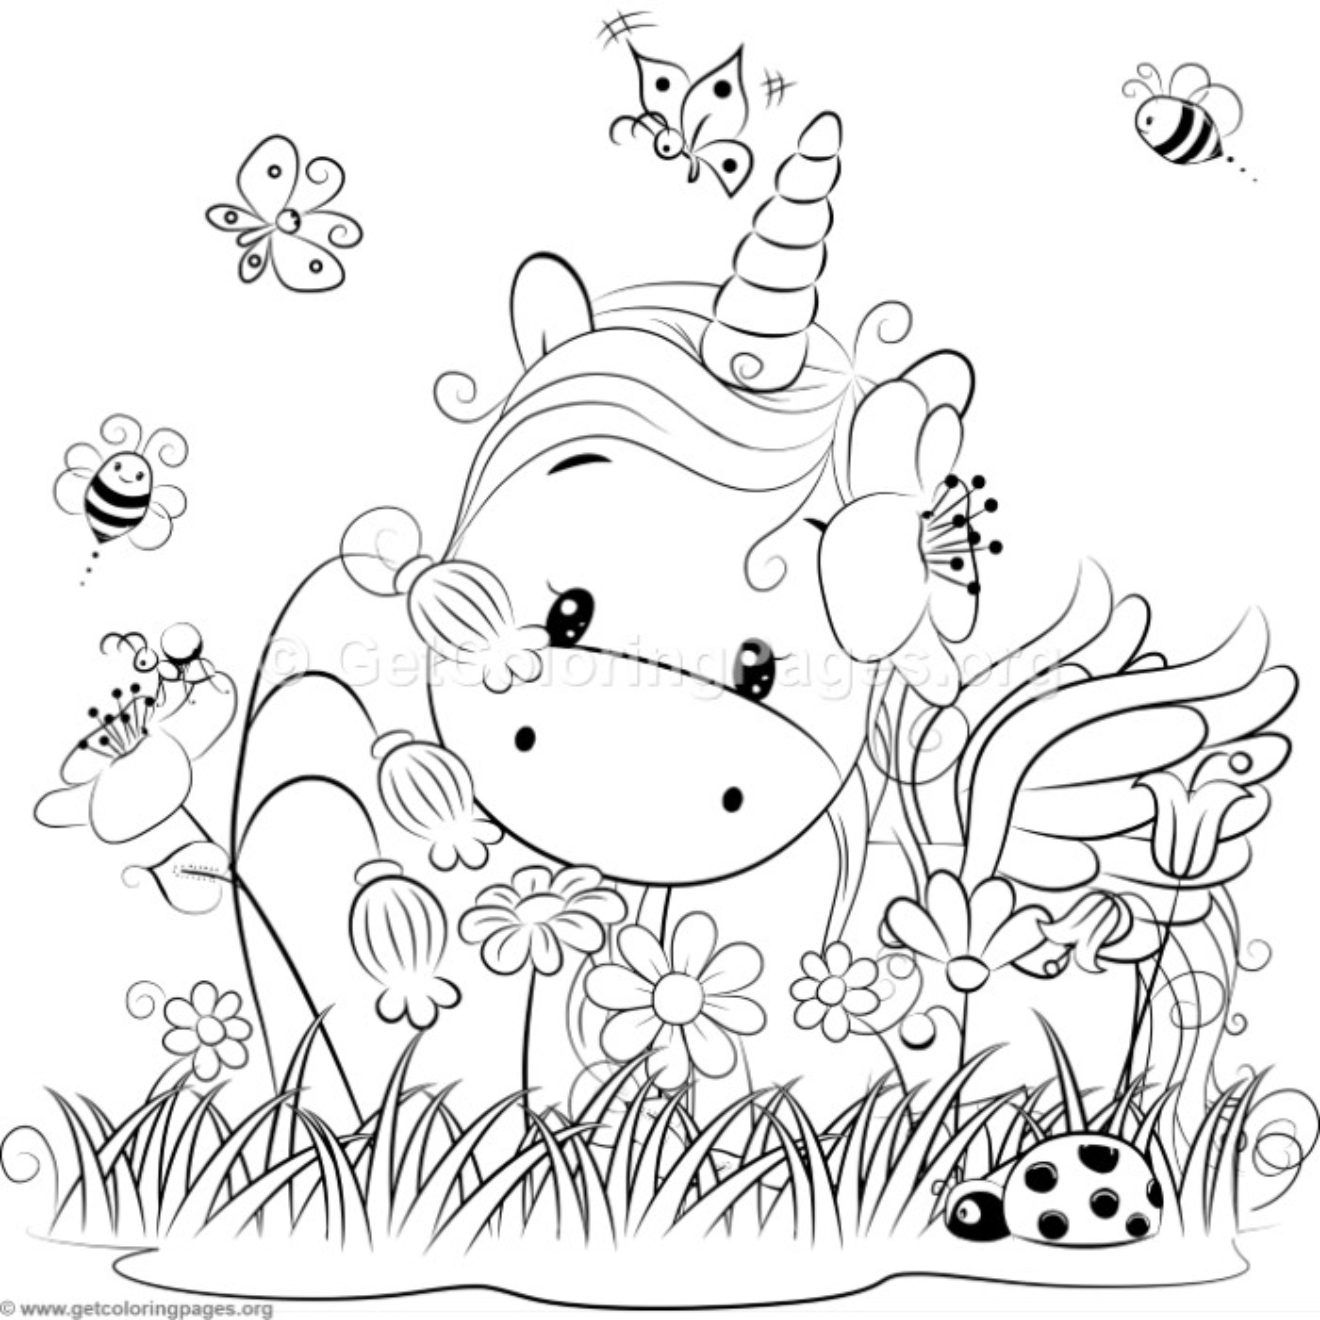 get coloring pages Cute Unicorn 3 Coloring Pages – GetColoringPages.| Unicorns  get coloring pages